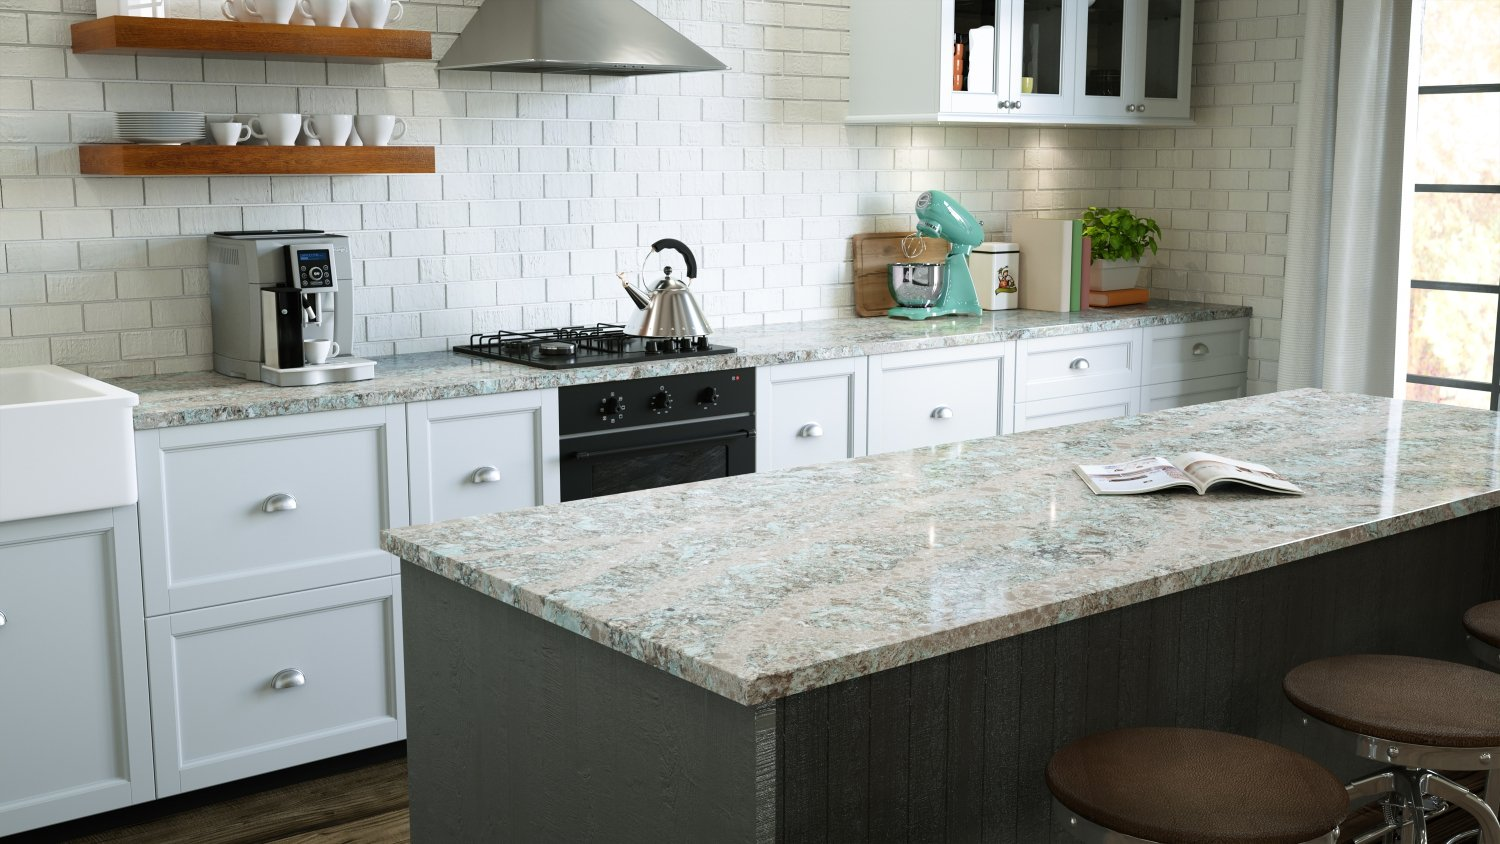 Uncategorized Kitchen Countertops London Ontario Wingsioskins Home Design